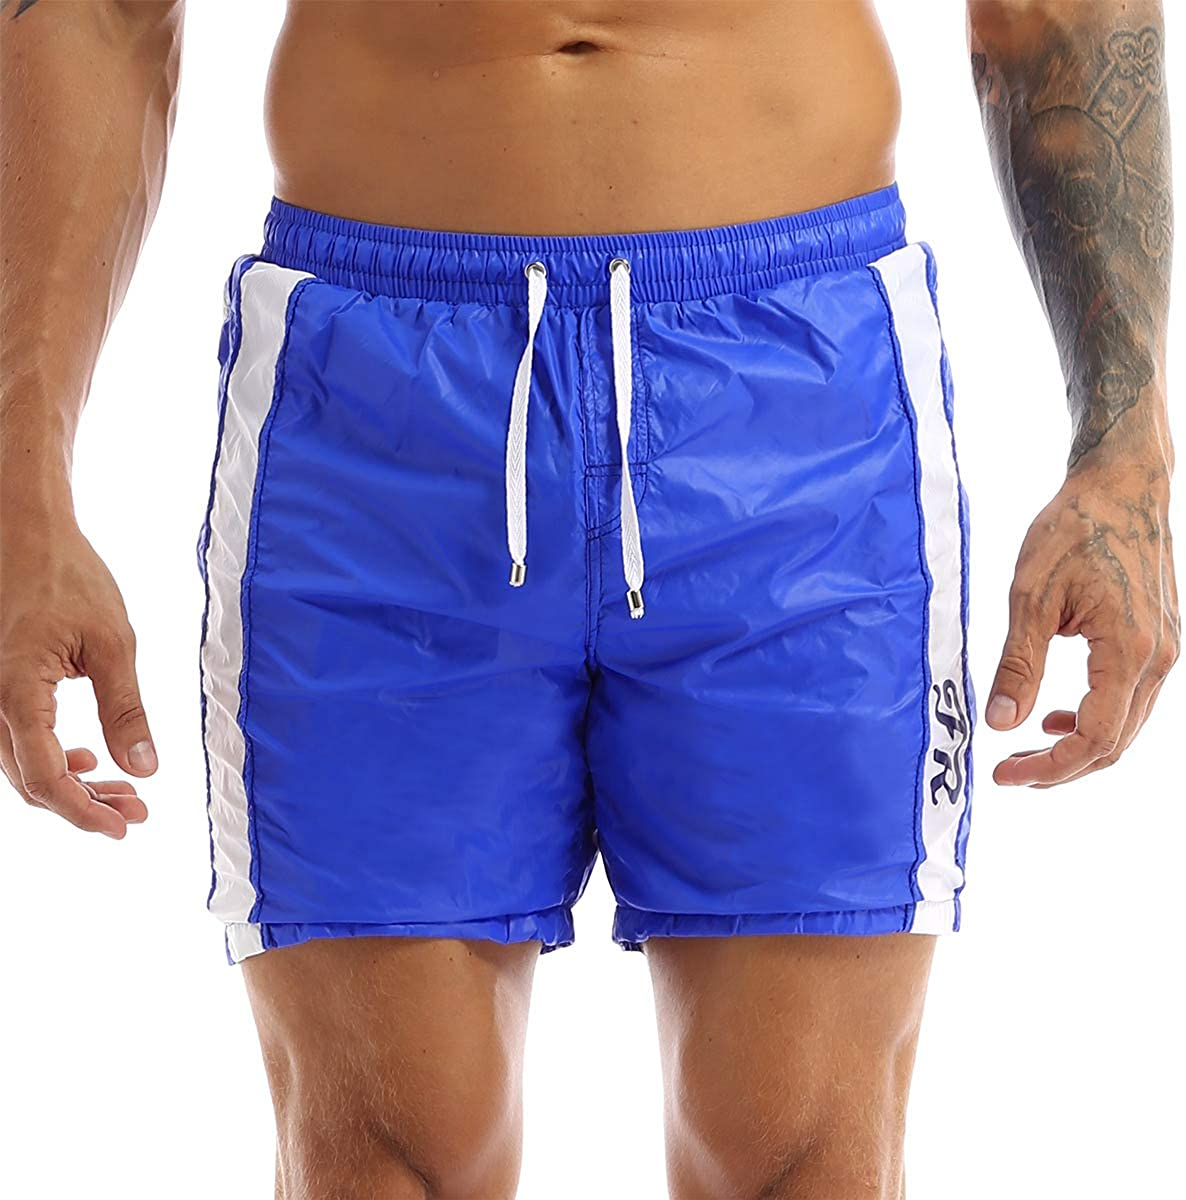 MSemis Mens Drawstring Sport Boxer Shorts Swimsuit Elastic Beach Summer Lounge Shorts with Zip Pockets